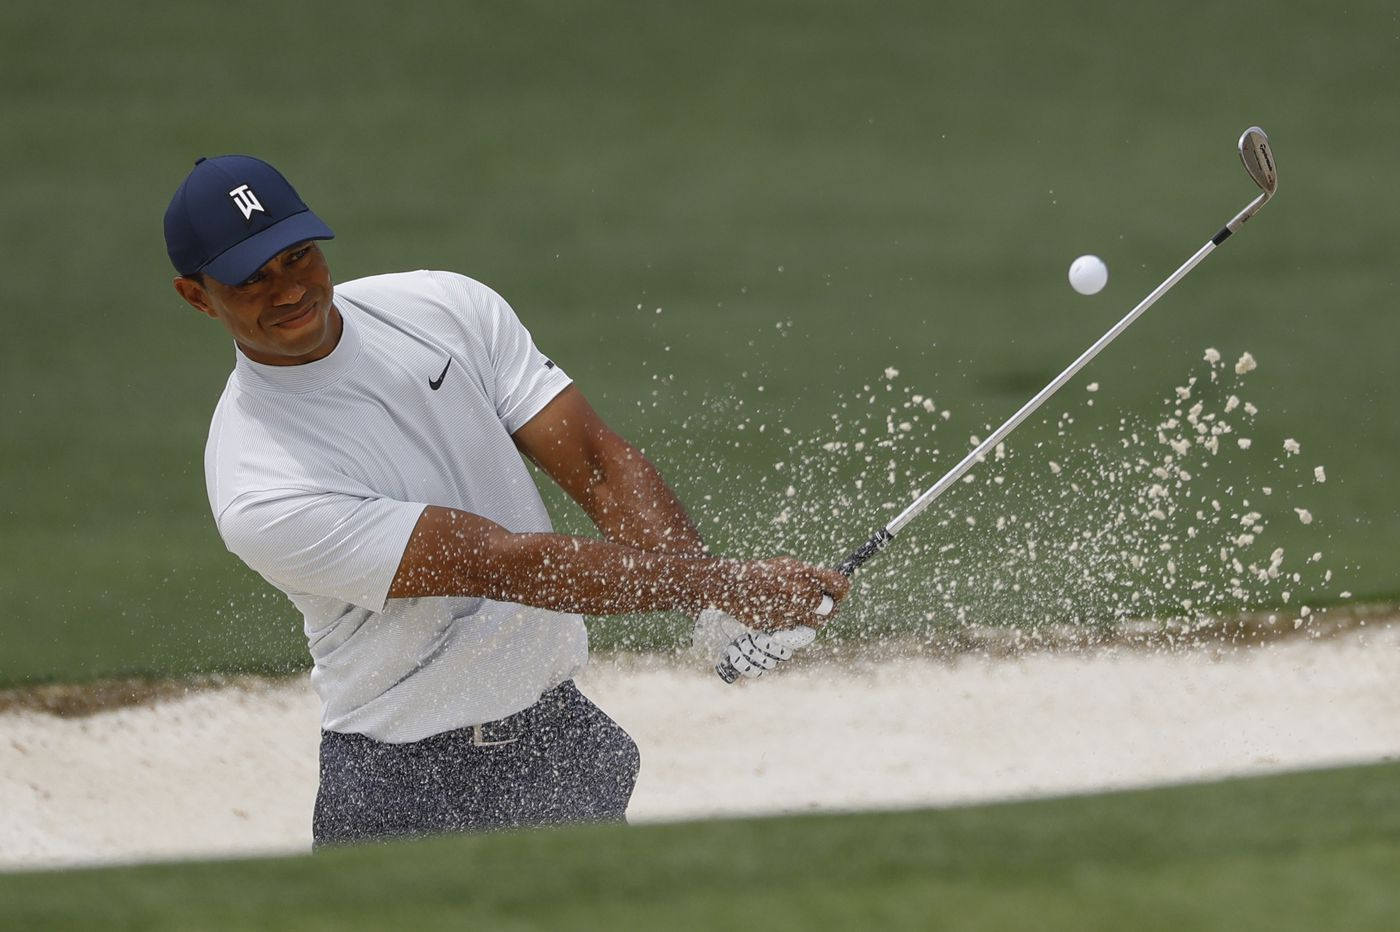 Tiger Woods makes comeback with his fifth victory at The Masters